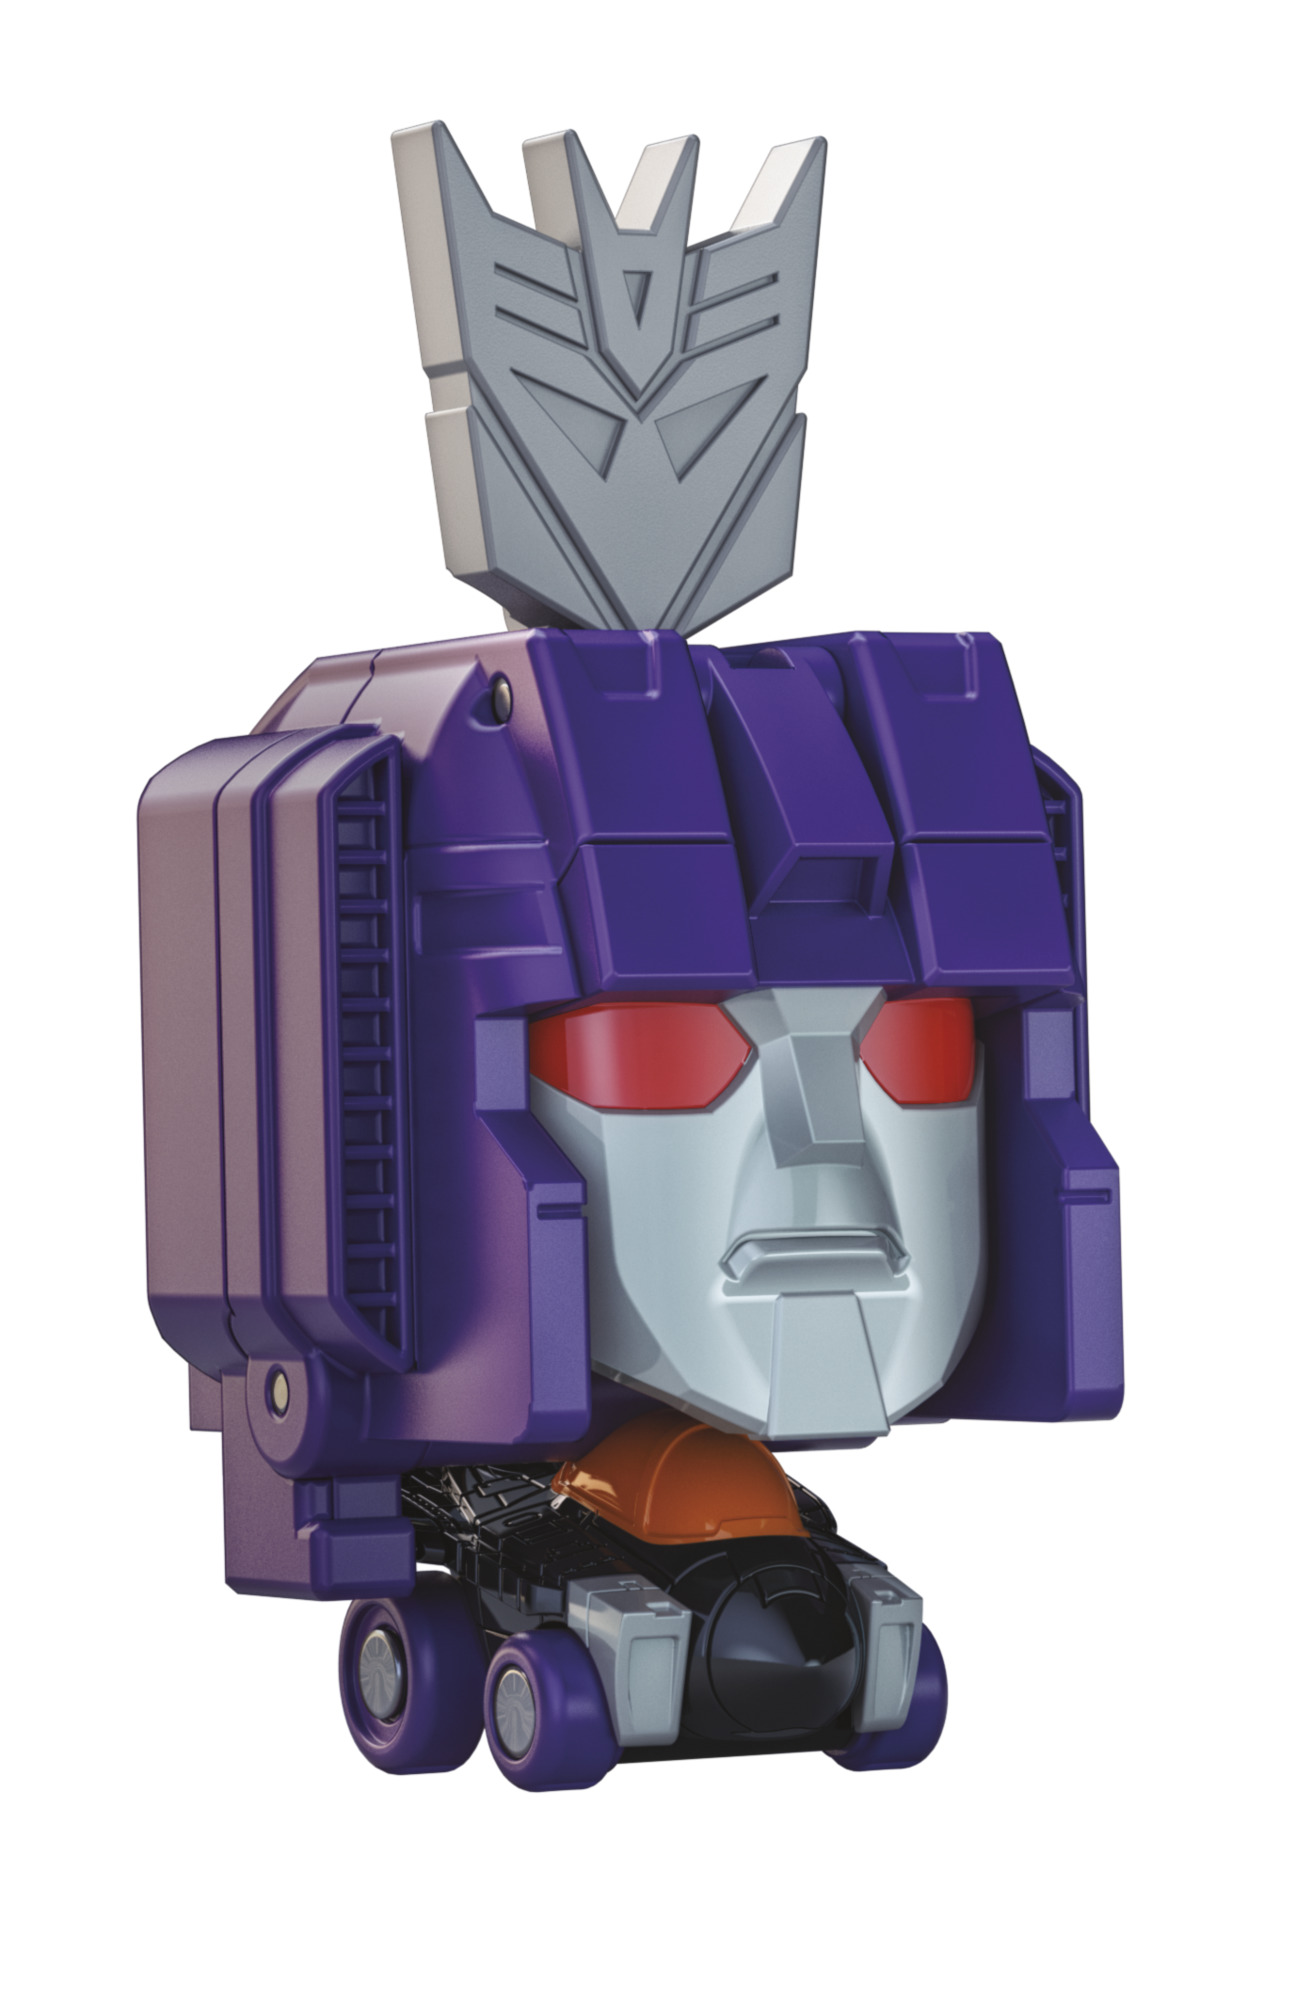 Transformers Alt Modes Official Images Transformers News